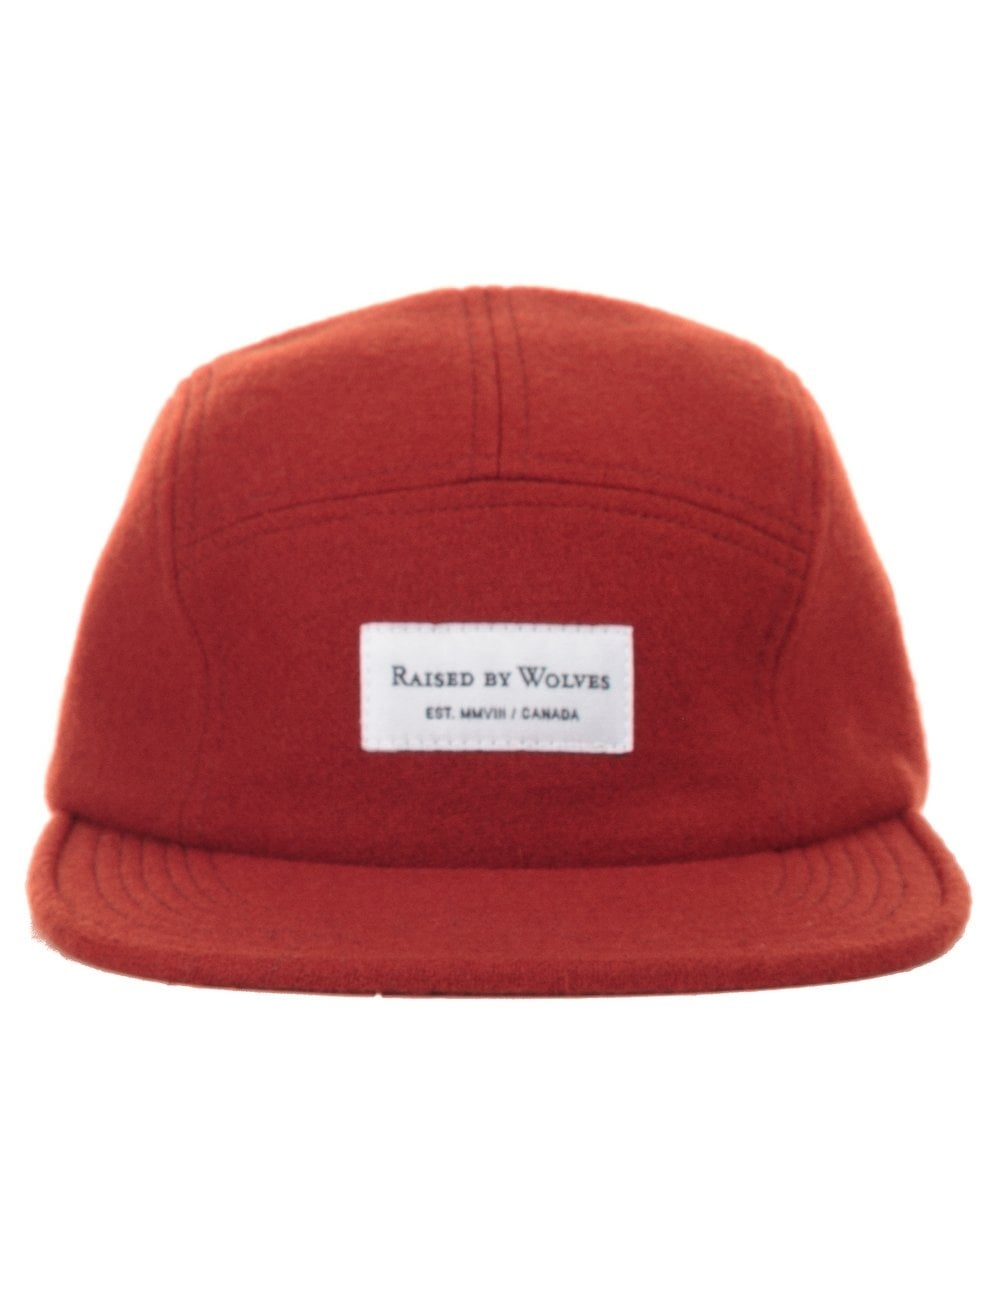 53cfa05b64e39 Raised by Wolves Woolrich 5 Panel - Rust - Accessories from Fat ...